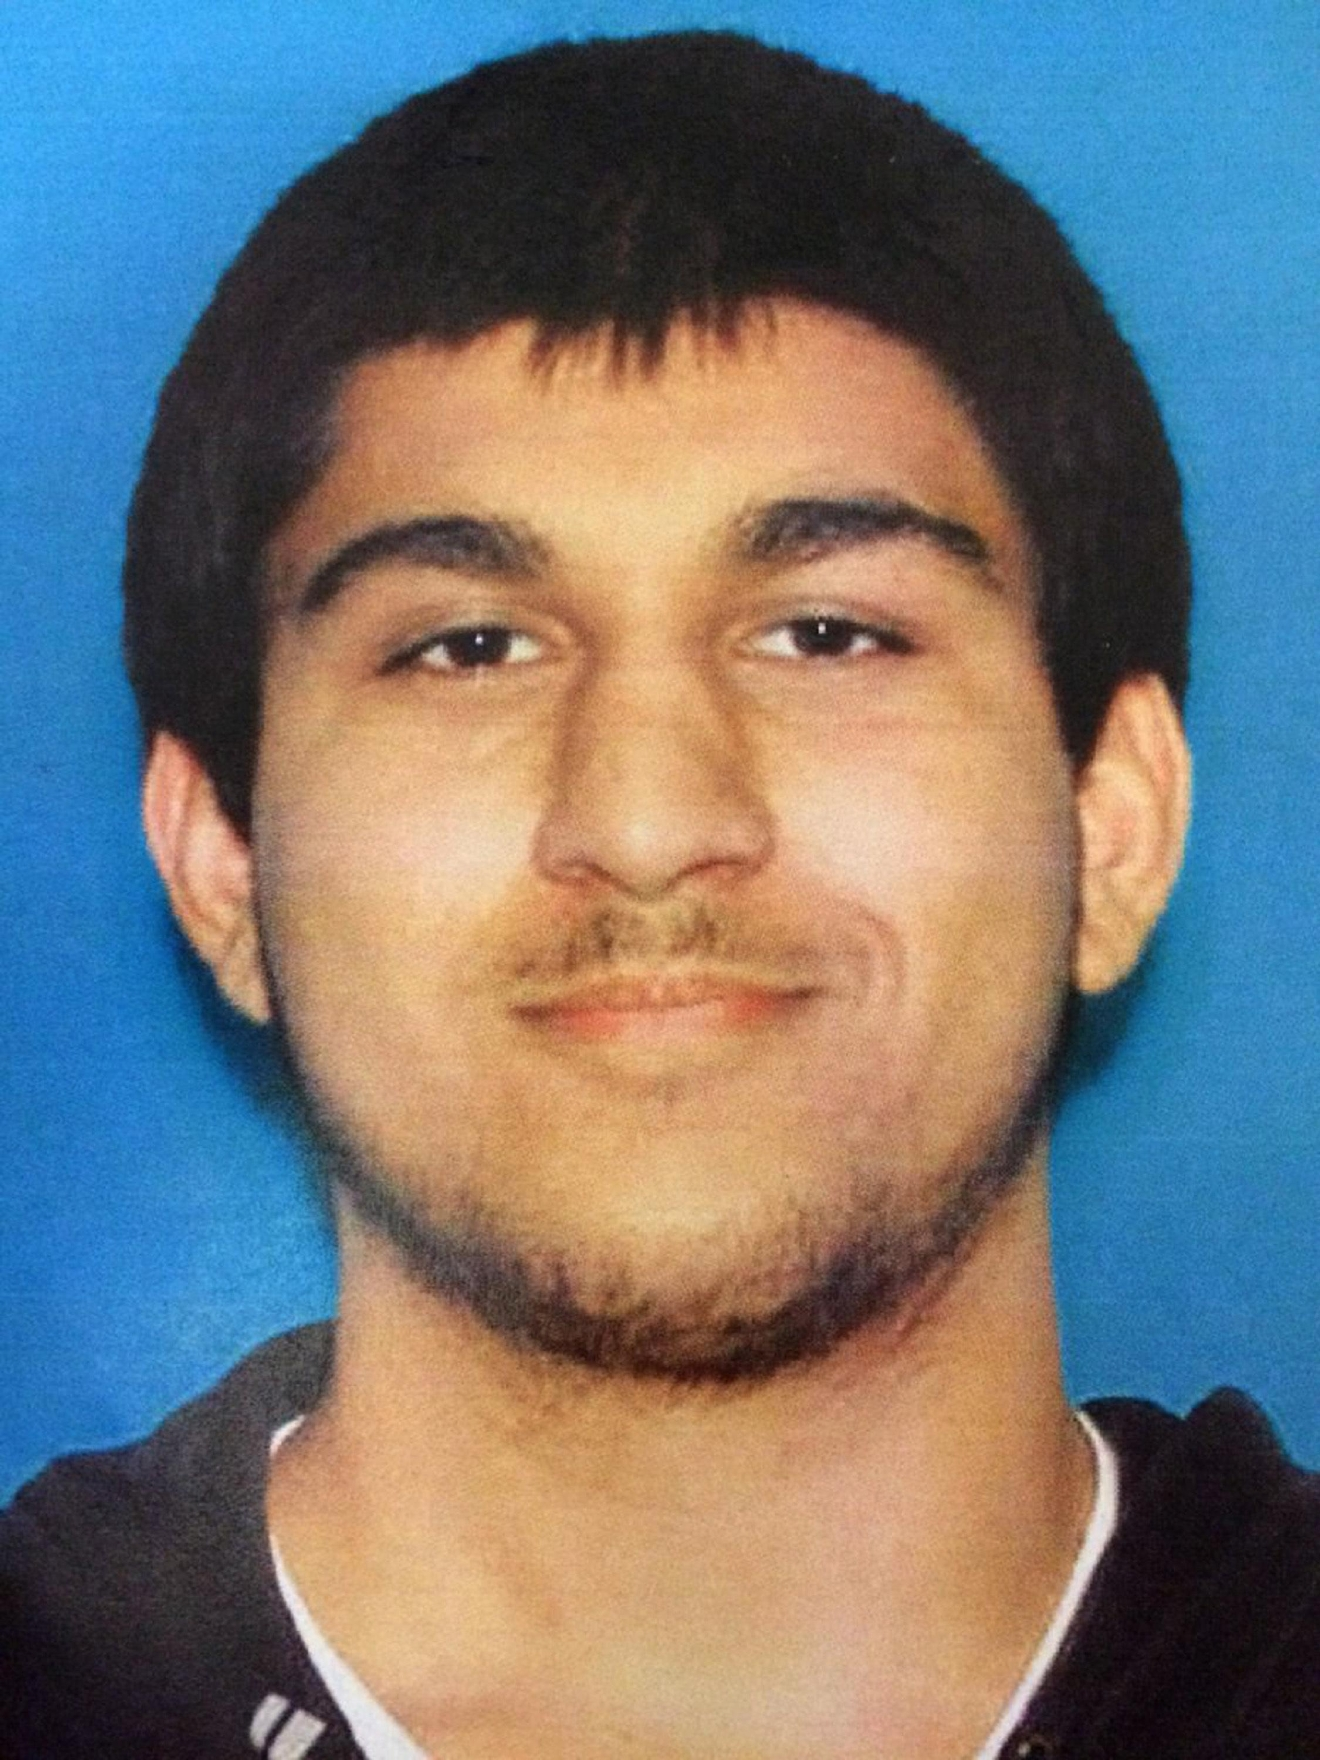 This undated Department of Licensing photo posted Saturday, Sept. 24, 2016, by the Washington State Patrol on its Twitter page shows Arcan Cetin, 20, of Oak Harbor, Wash. Patrol Sgt. Mark Francis Saturday via Twitter identified Cetin as the suspect in a shooting at the Cascade Mall in Burlington, Wash., that left several dead and sparked an intensive, nearly 24-hour manhunt. Authorities say Cetin was apprehended Saturday evening. (Washington State Patrol via AP)